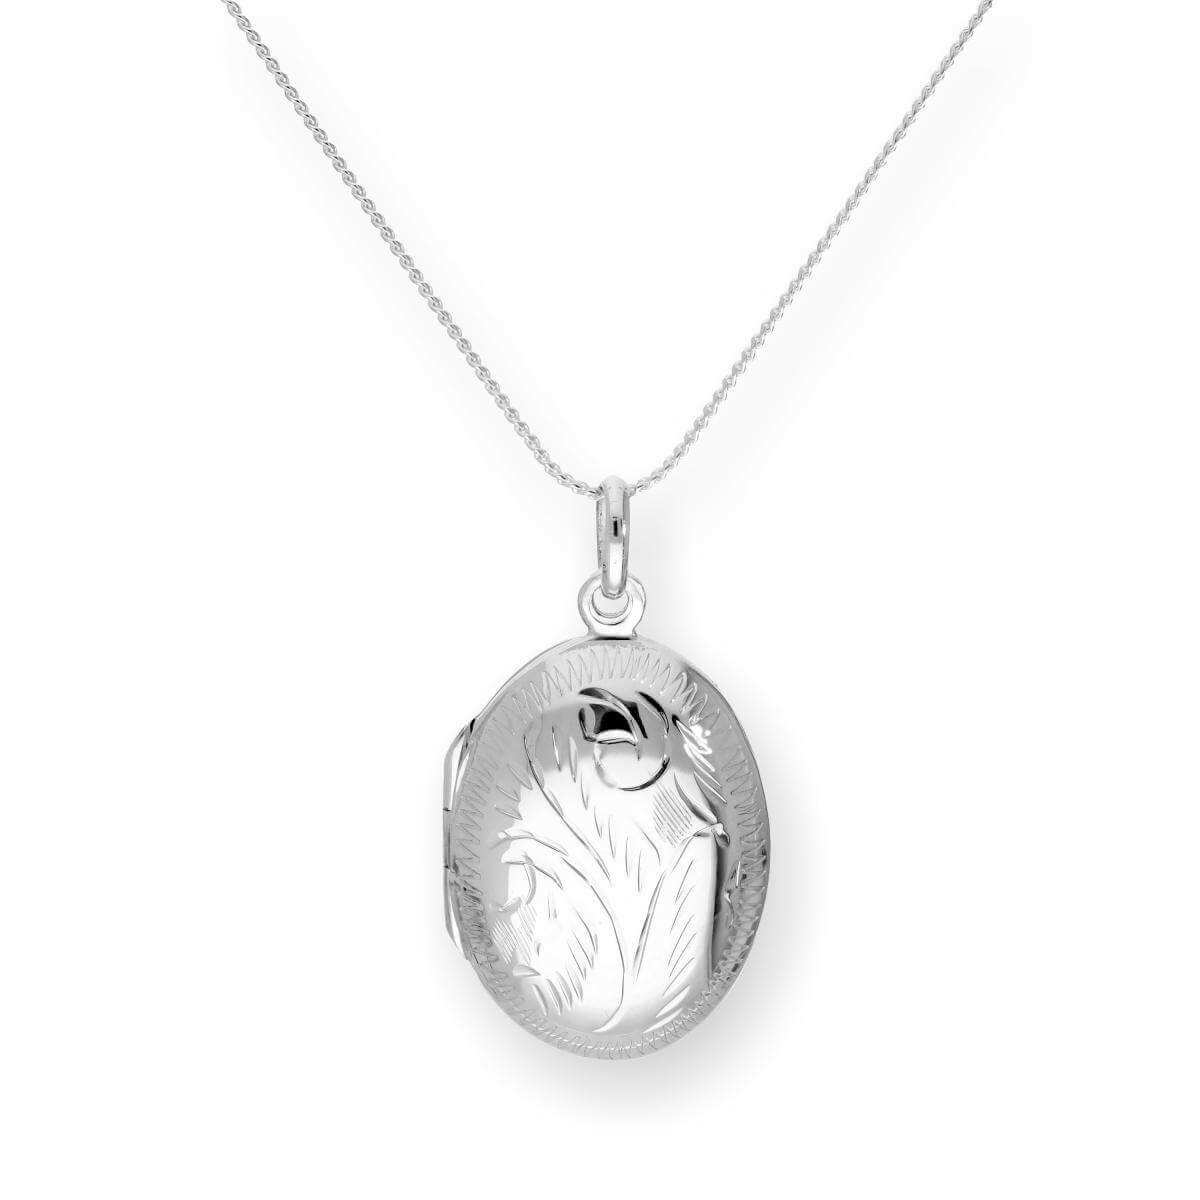 Sterling Silver Engraved Oval Locket on Chain 16 - 22 Inches